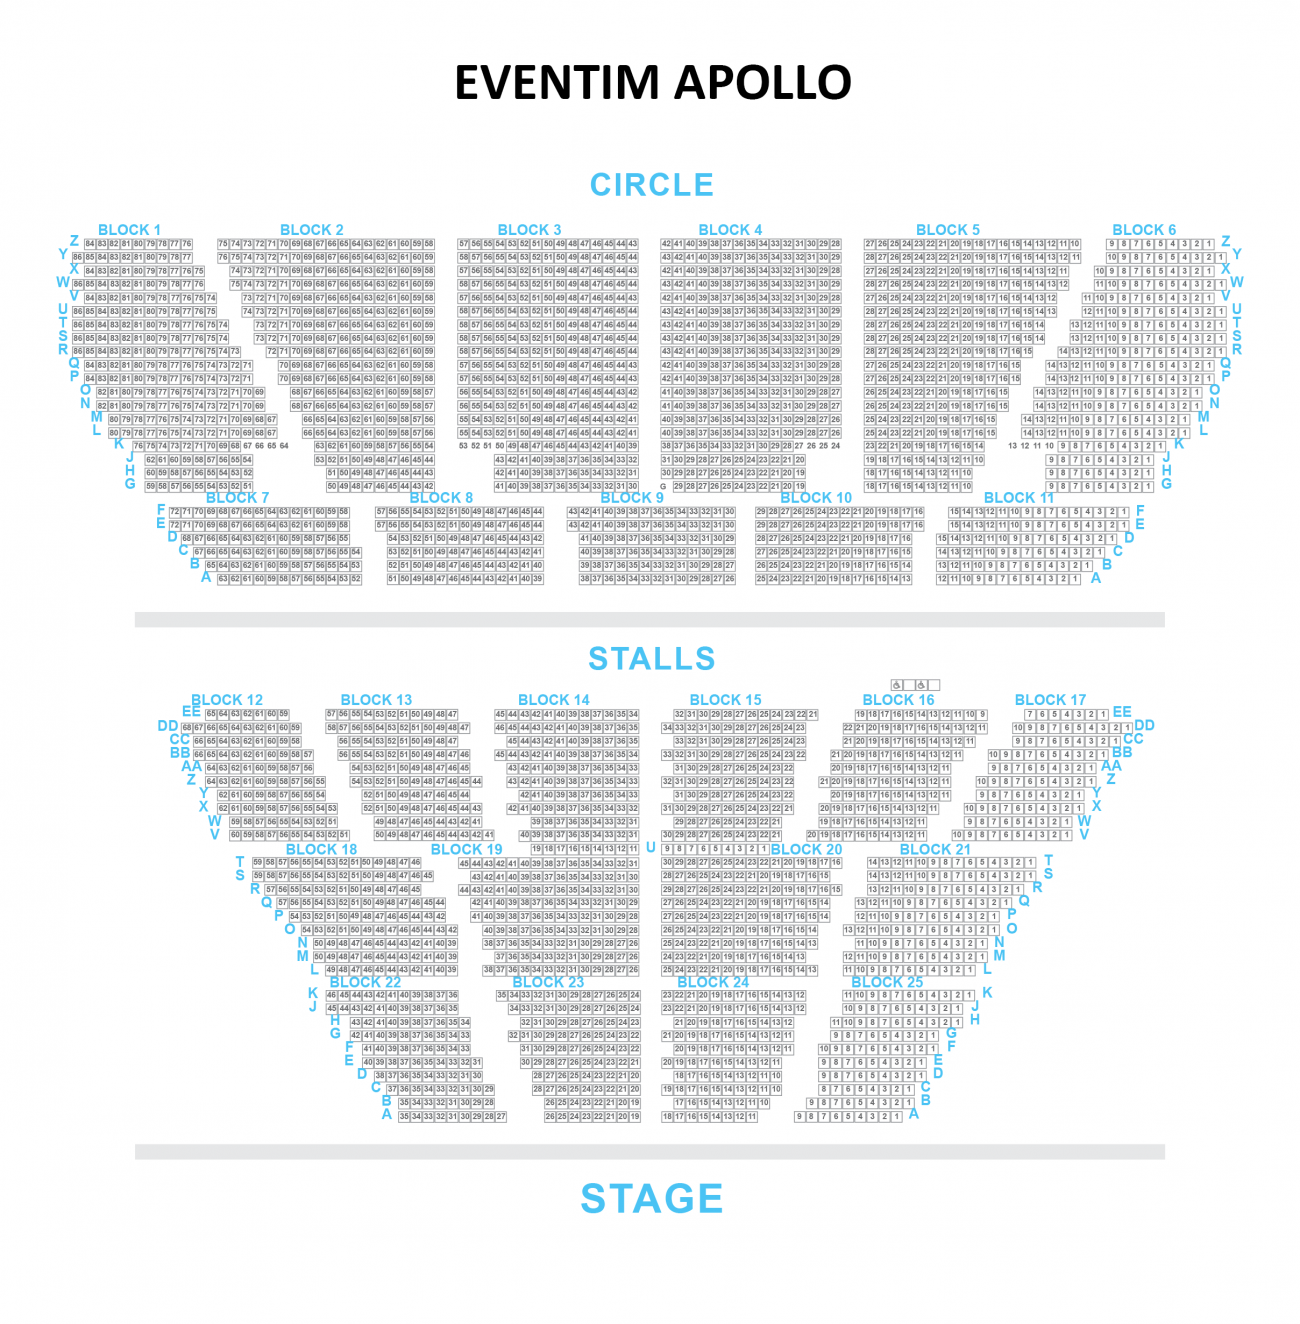 Hammersmith Apollo (Eventim) Seating plan